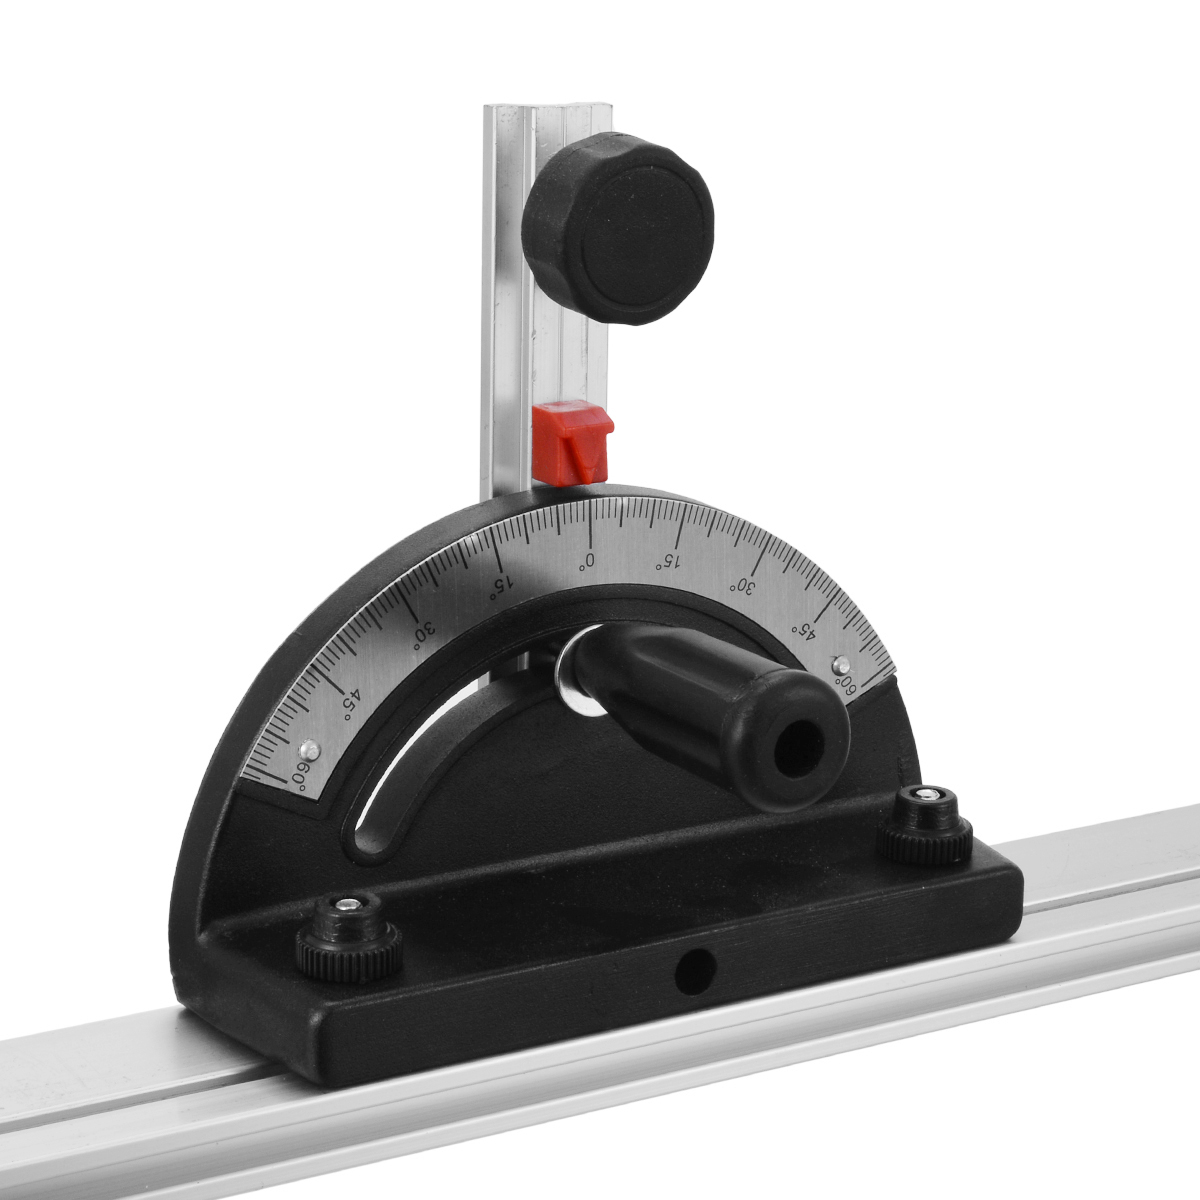 Mayitr Digital Protractor Inclinometer Angle Mitre Guide Gauge Fence Measuring Tools For Woodworking Machinery Parts.